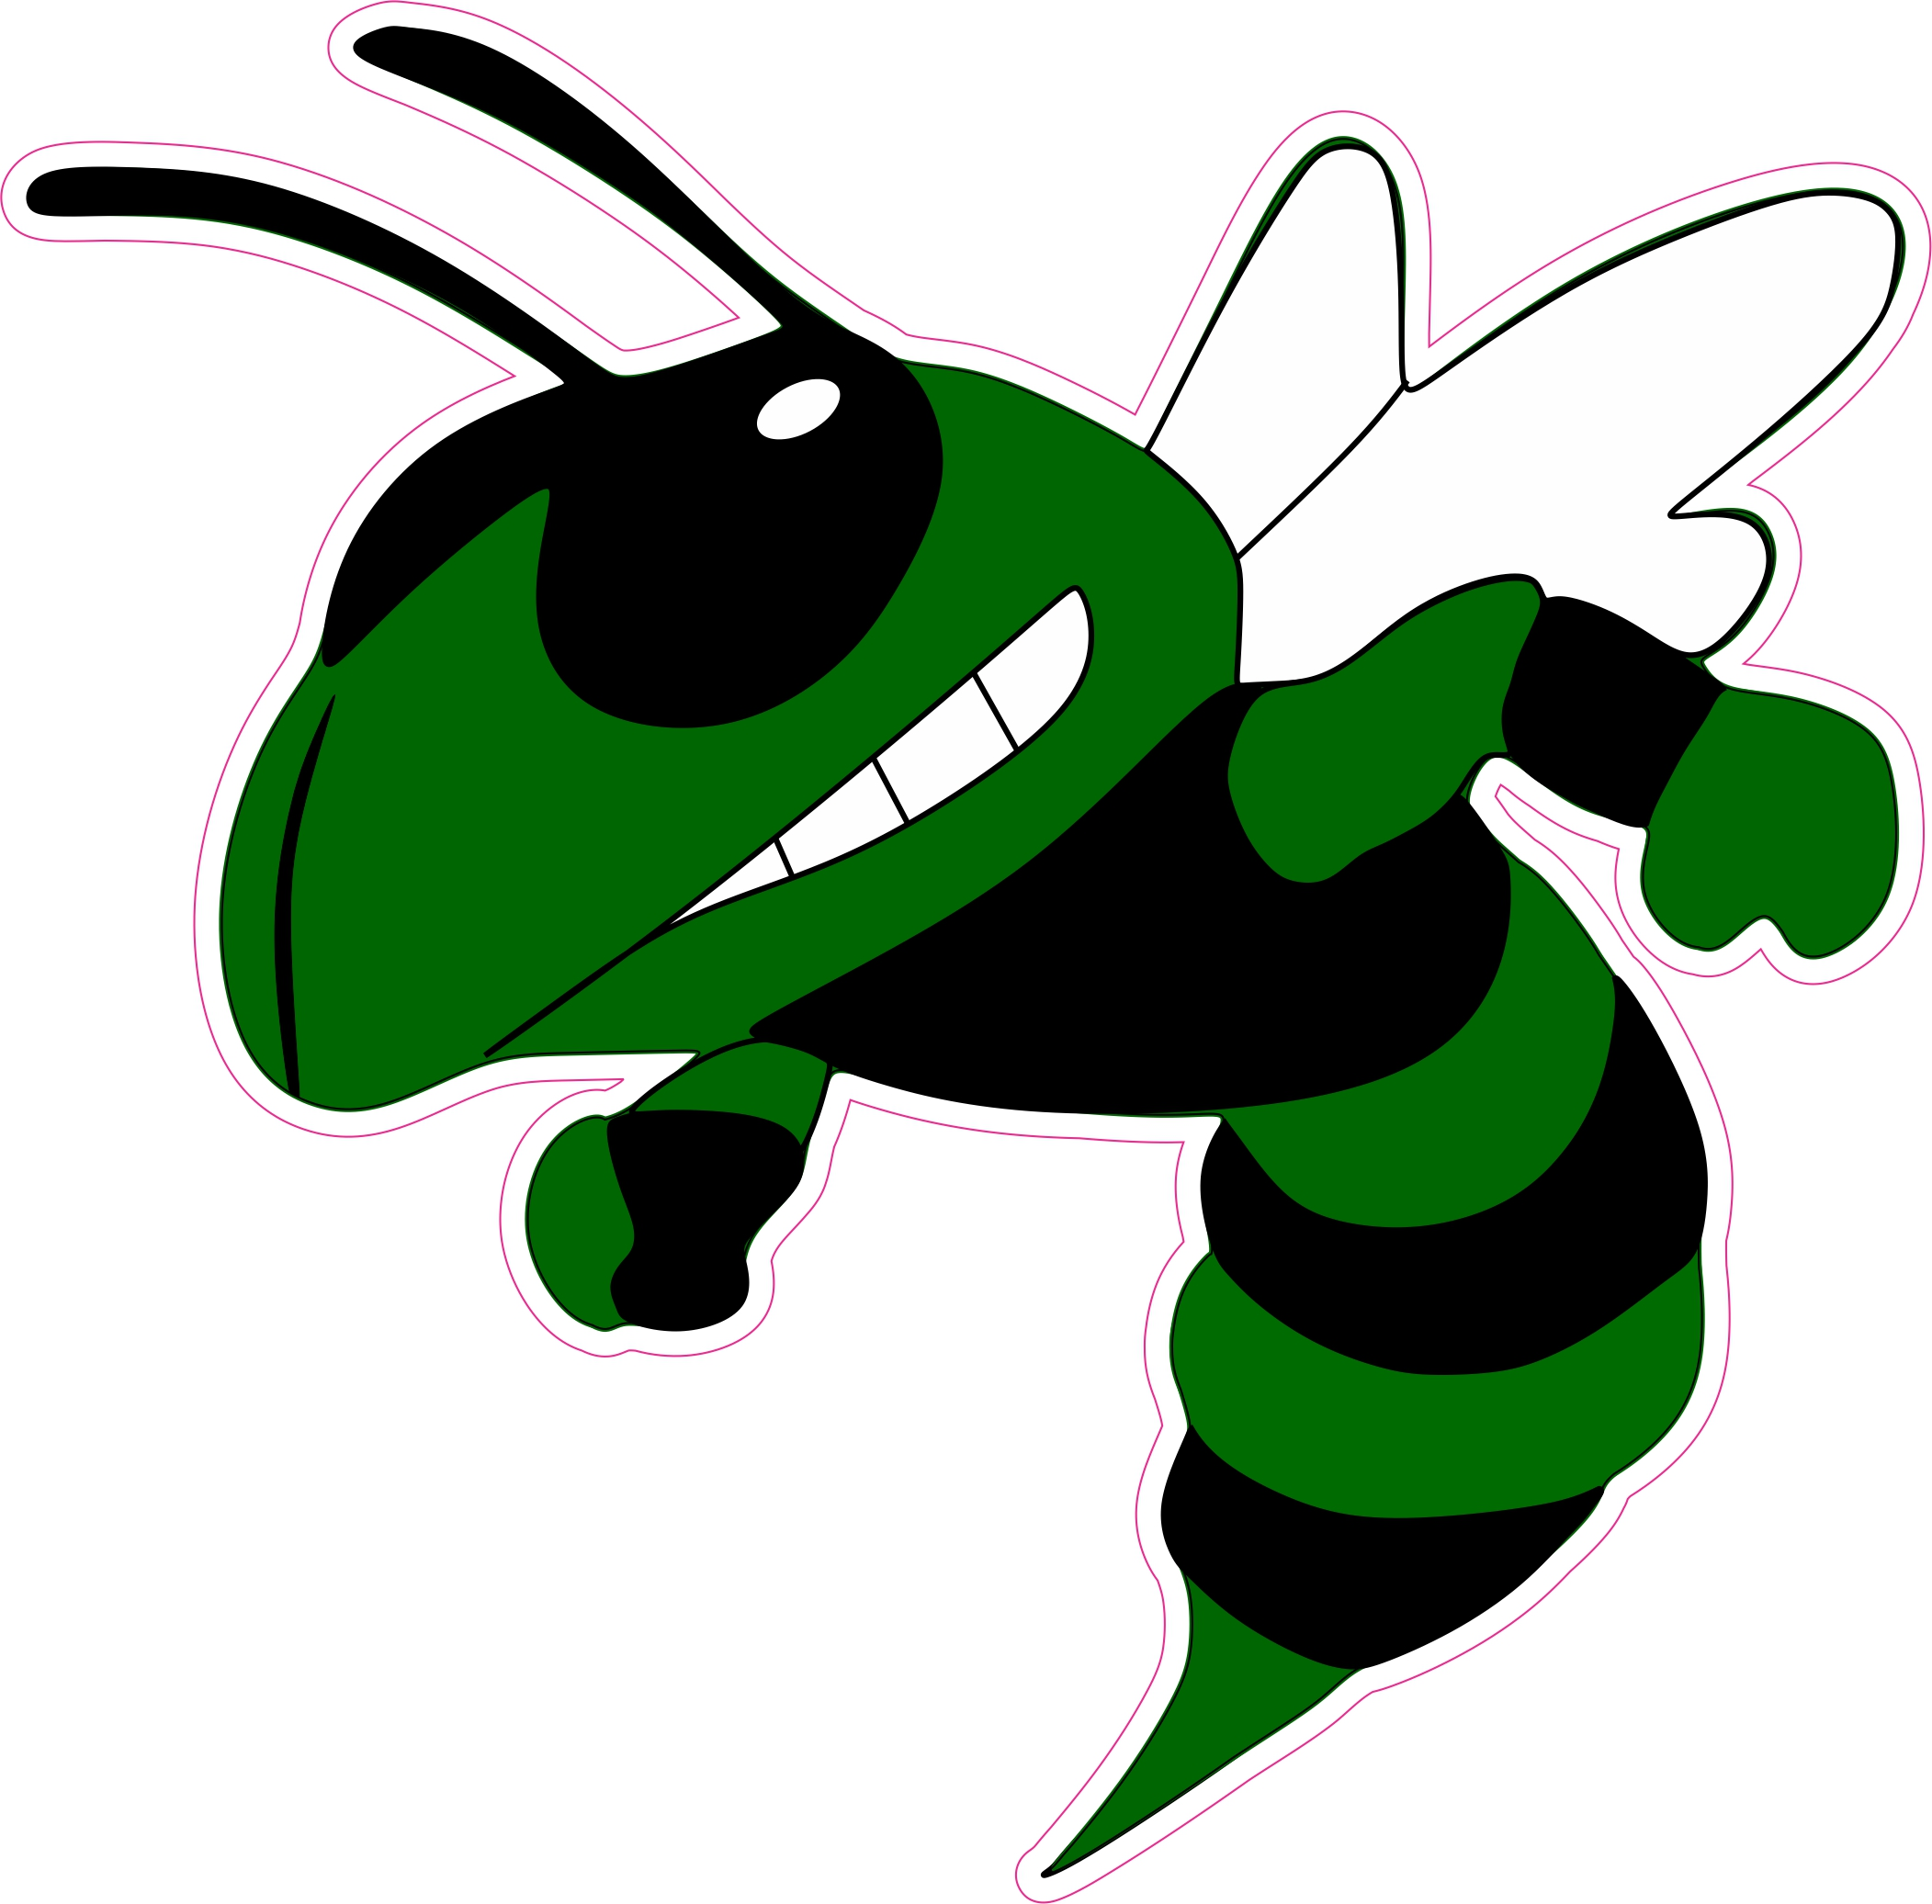 7in x 7in Left Facing Angry Dark Green Hornet Yellow Jacket Bumper Sticker  Decal Window Stickers Decals.